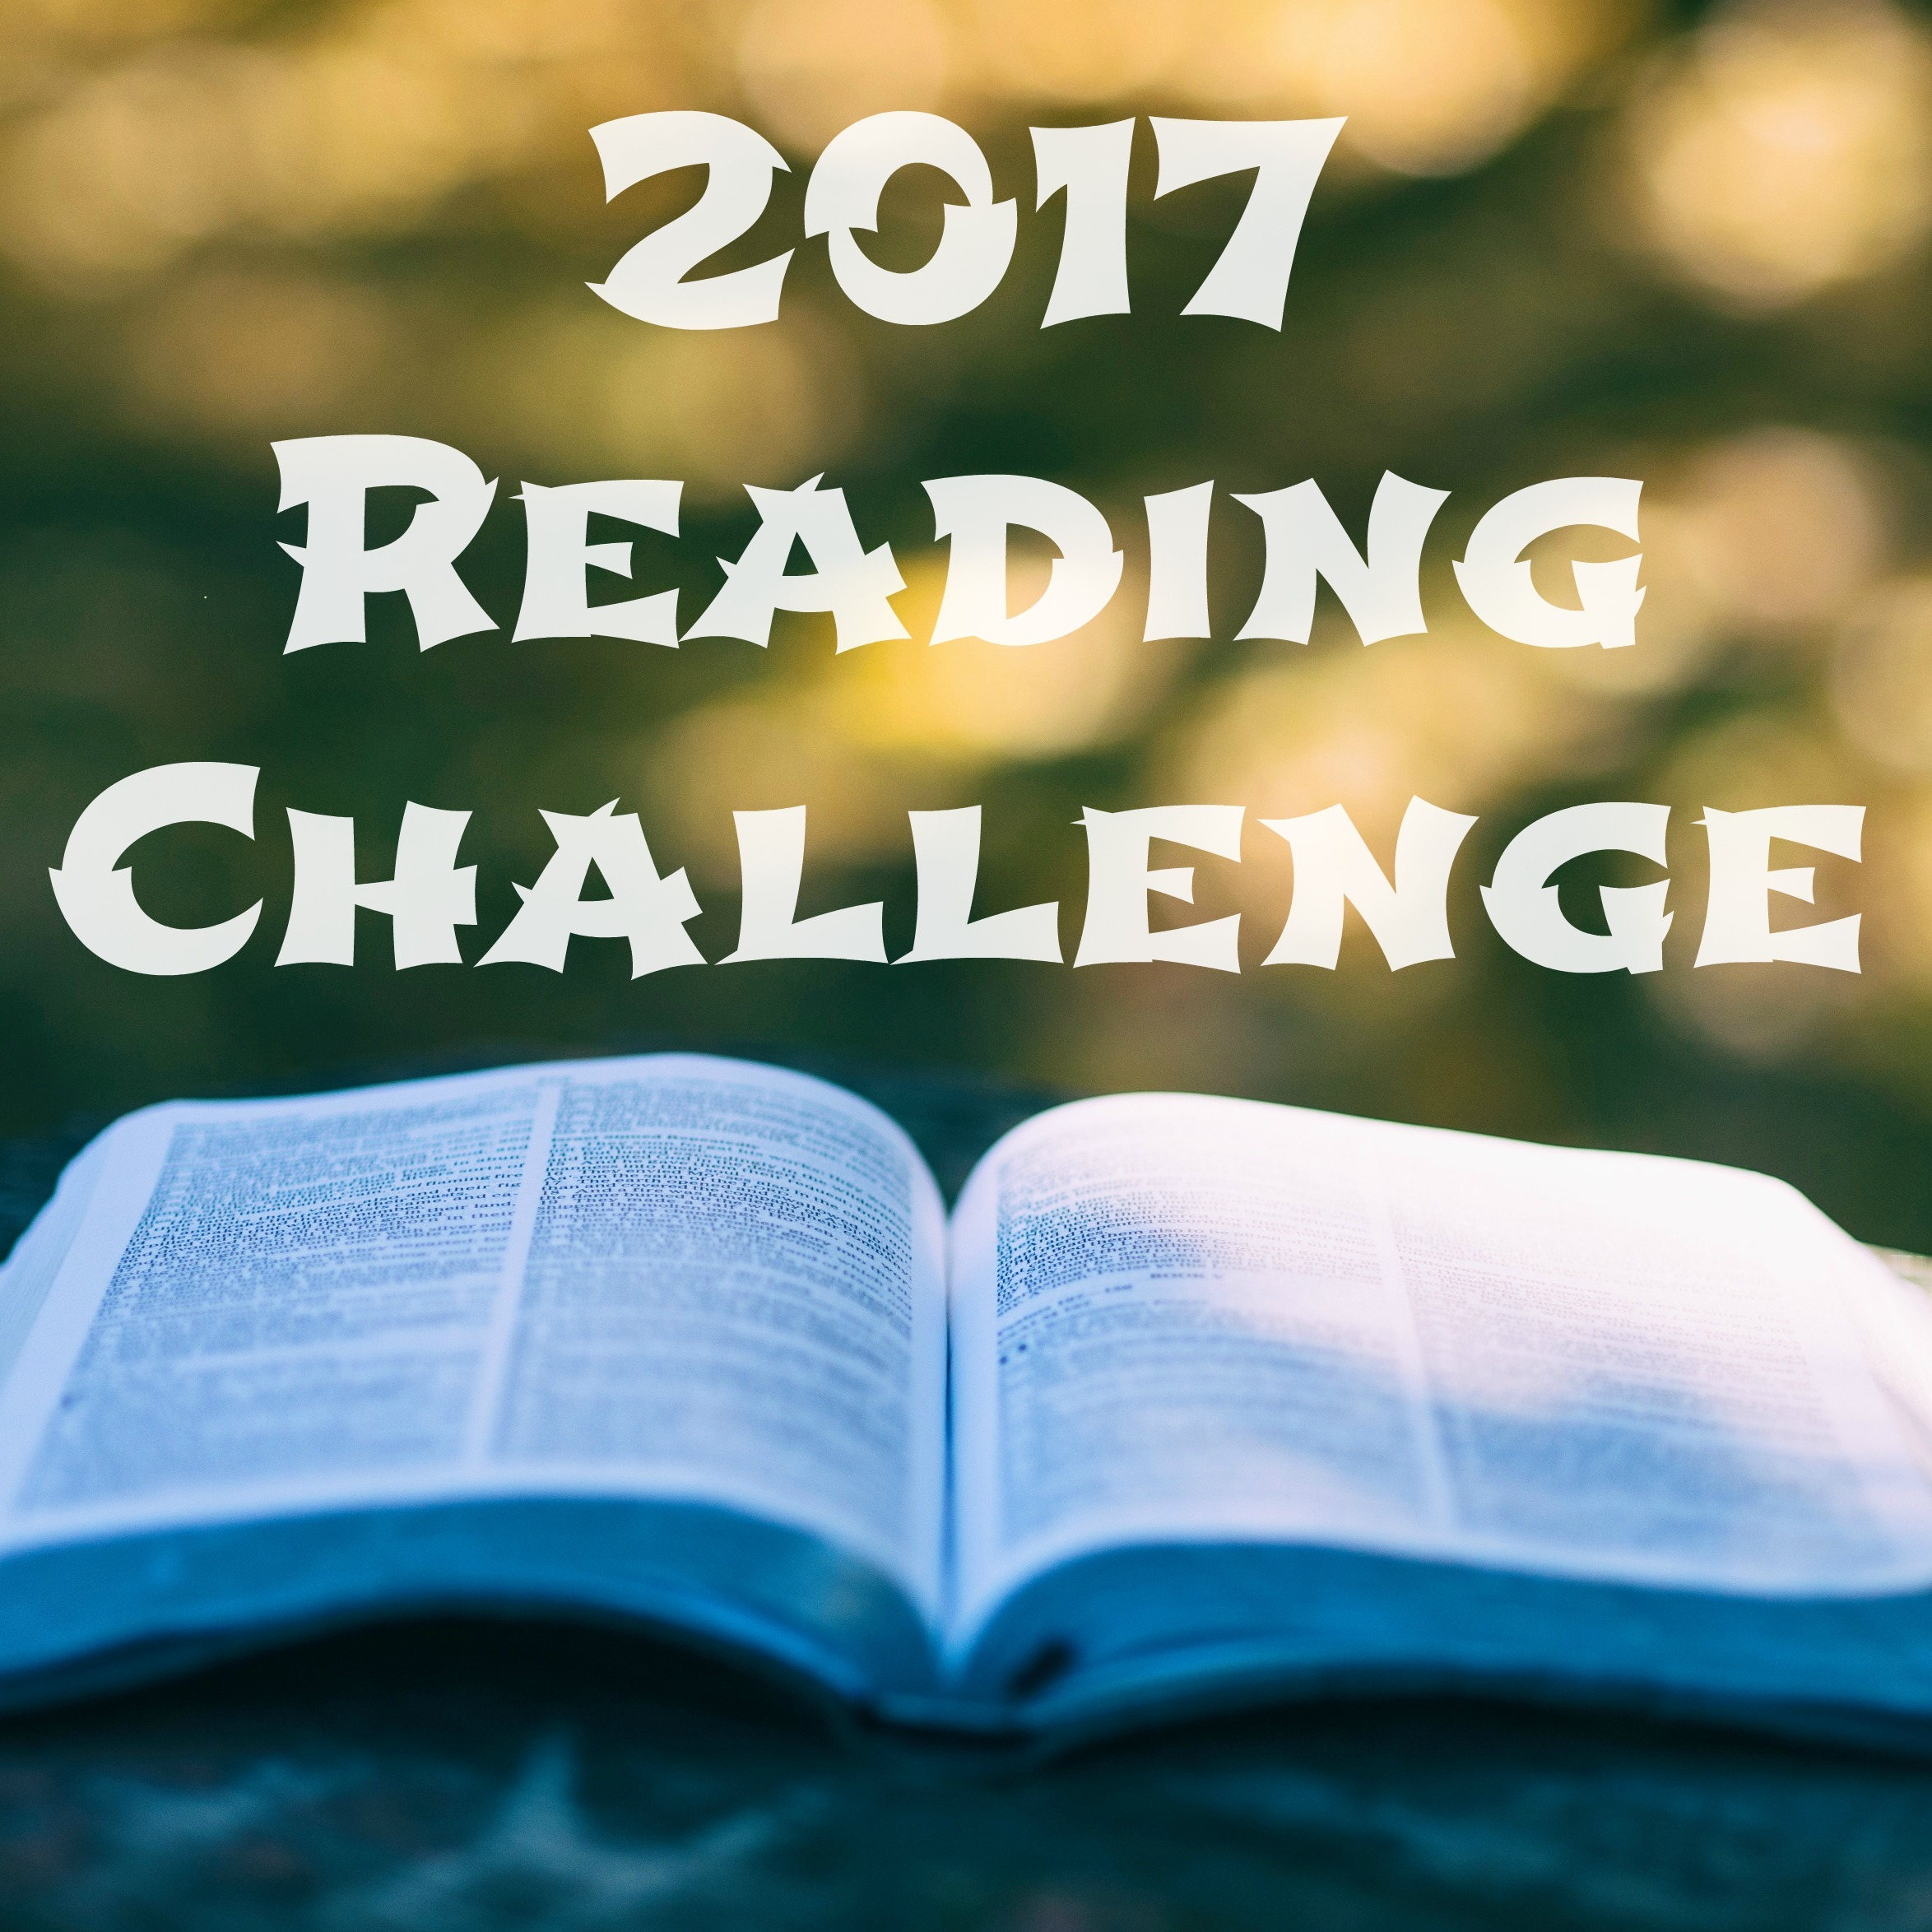 2017 Reading Challenge: A book written between 1900 and 1909.